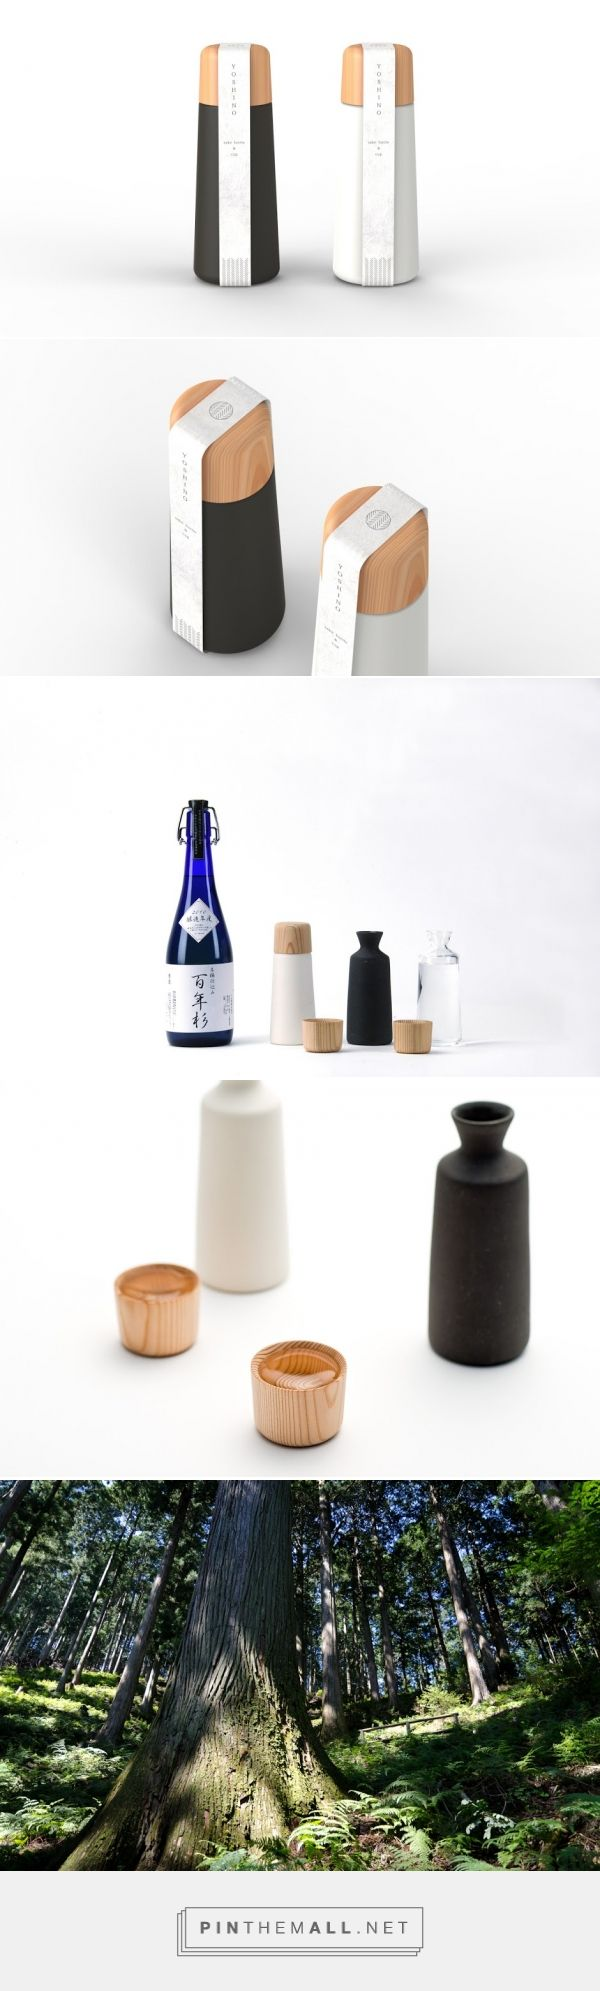 Yoshino #Sake #Cup And #Bottle designed by Doogdesign (#Japan) - http://www.packagingoftheworld.com/2016/02/yoshino-sake-cup-and-bottle.html